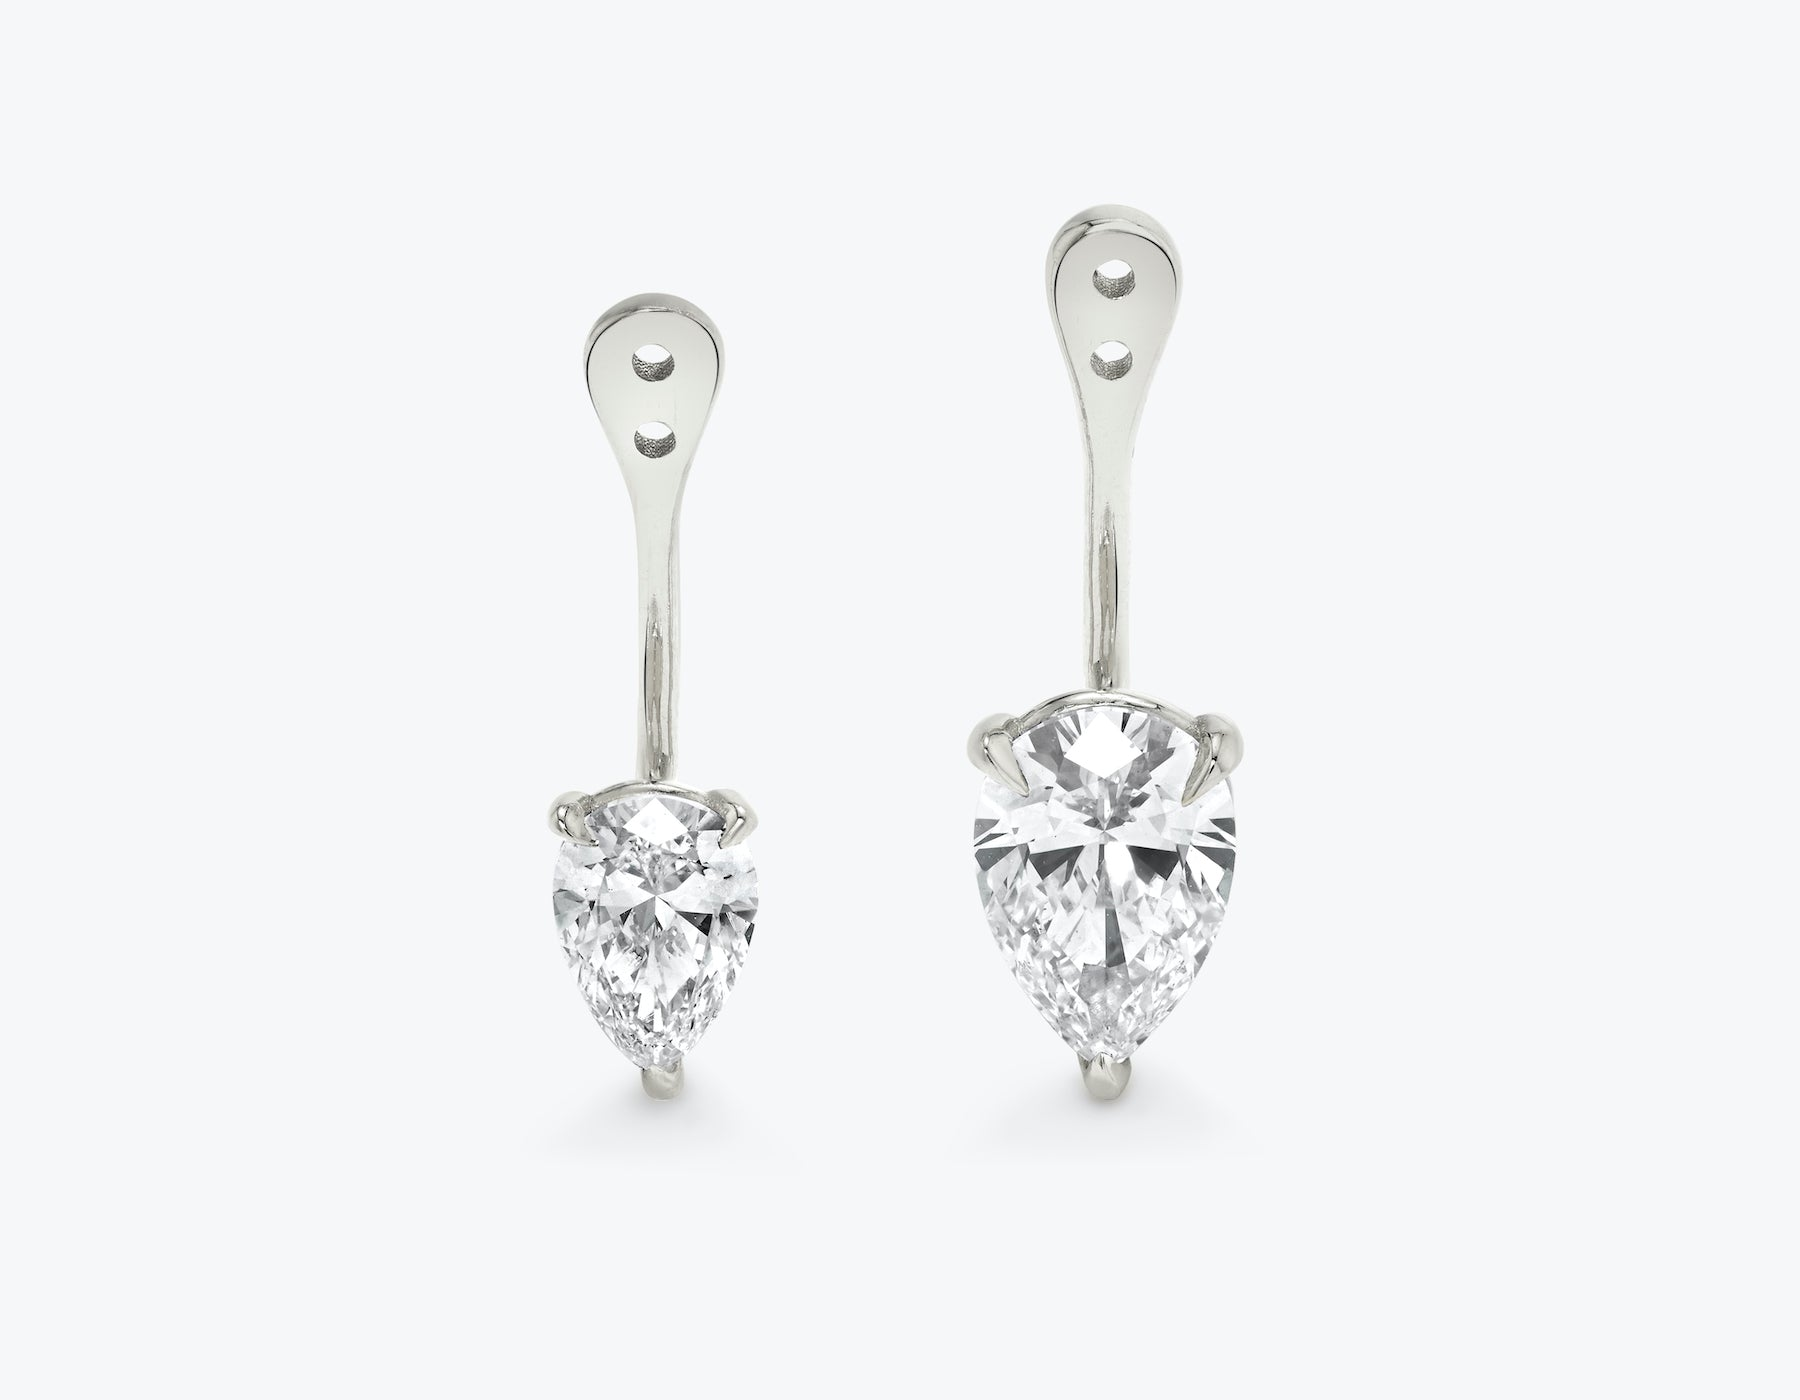 Vrai solitaire pear diamond drop ear jackets made in 14k solid gold with sustainably created diamonds, 14K White Gold